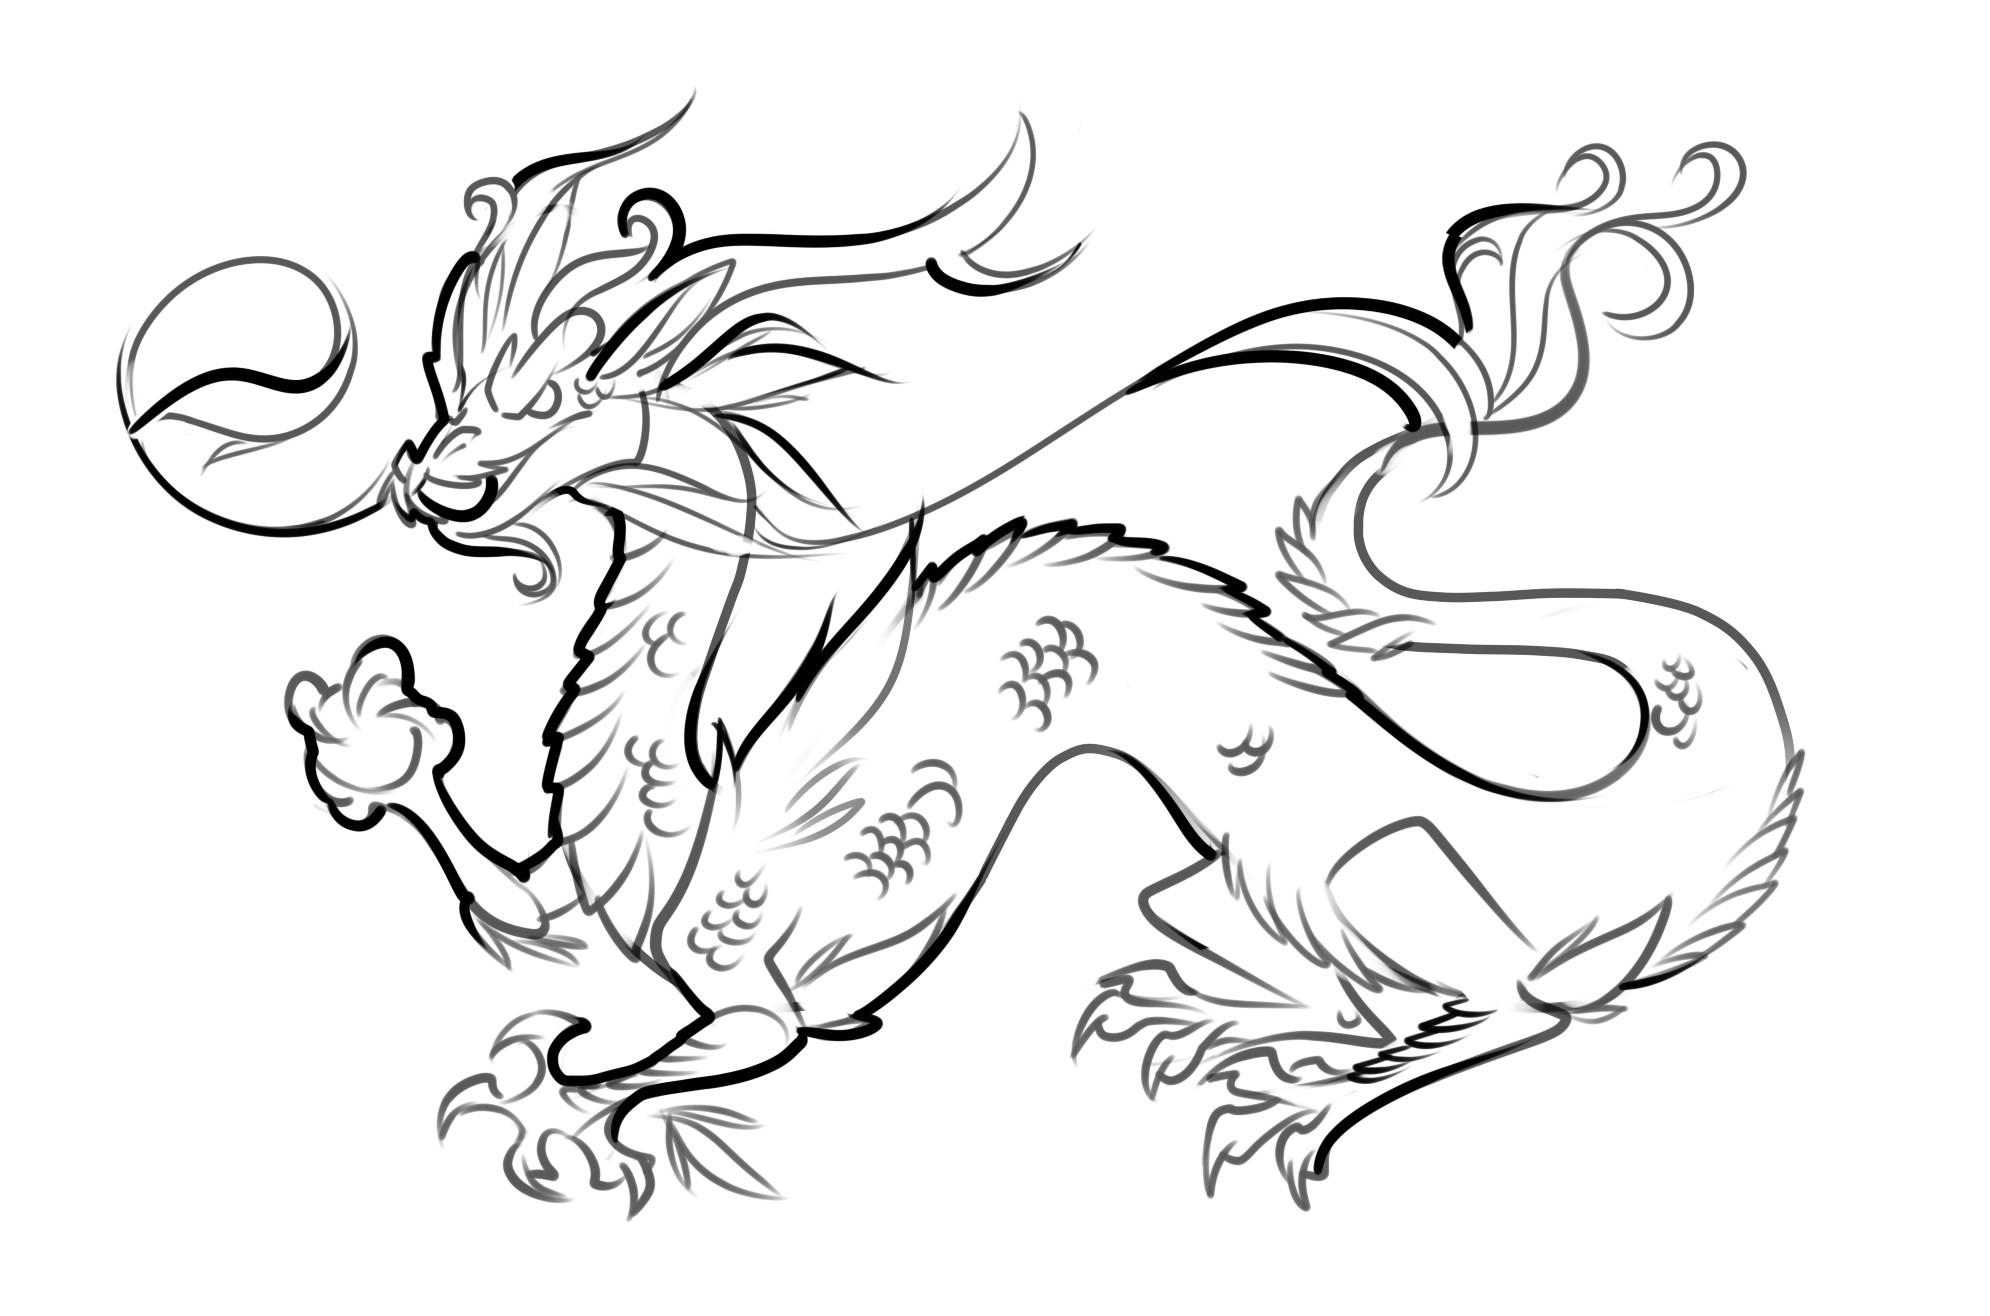 1990x1316 Chinese Dragon Coloring Pages Elegant Printable Dragon Coloring